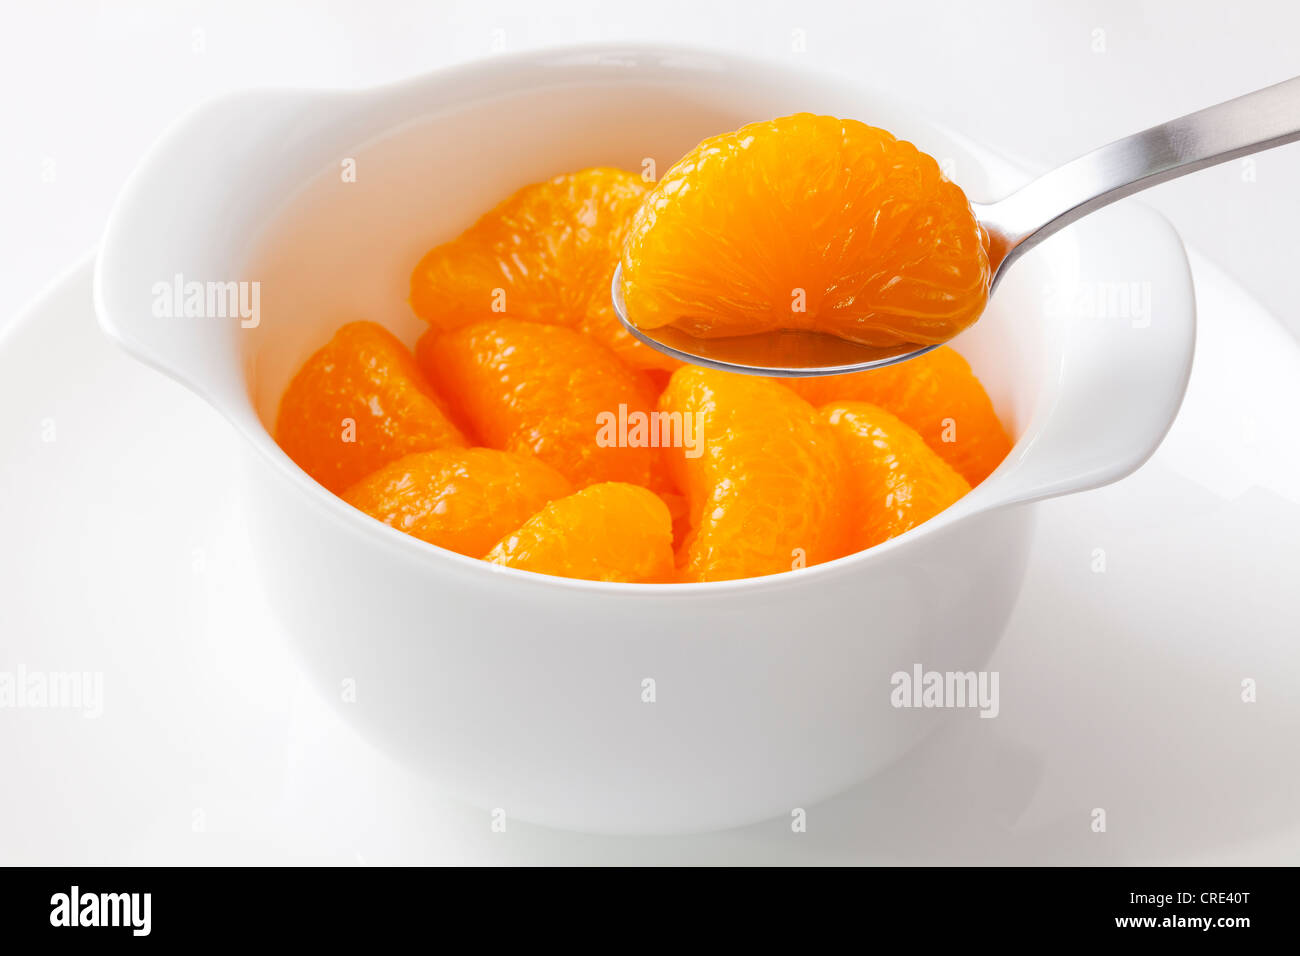 Mandarin oranges from a can, one segment being lifted with a spoon. - Stock Image